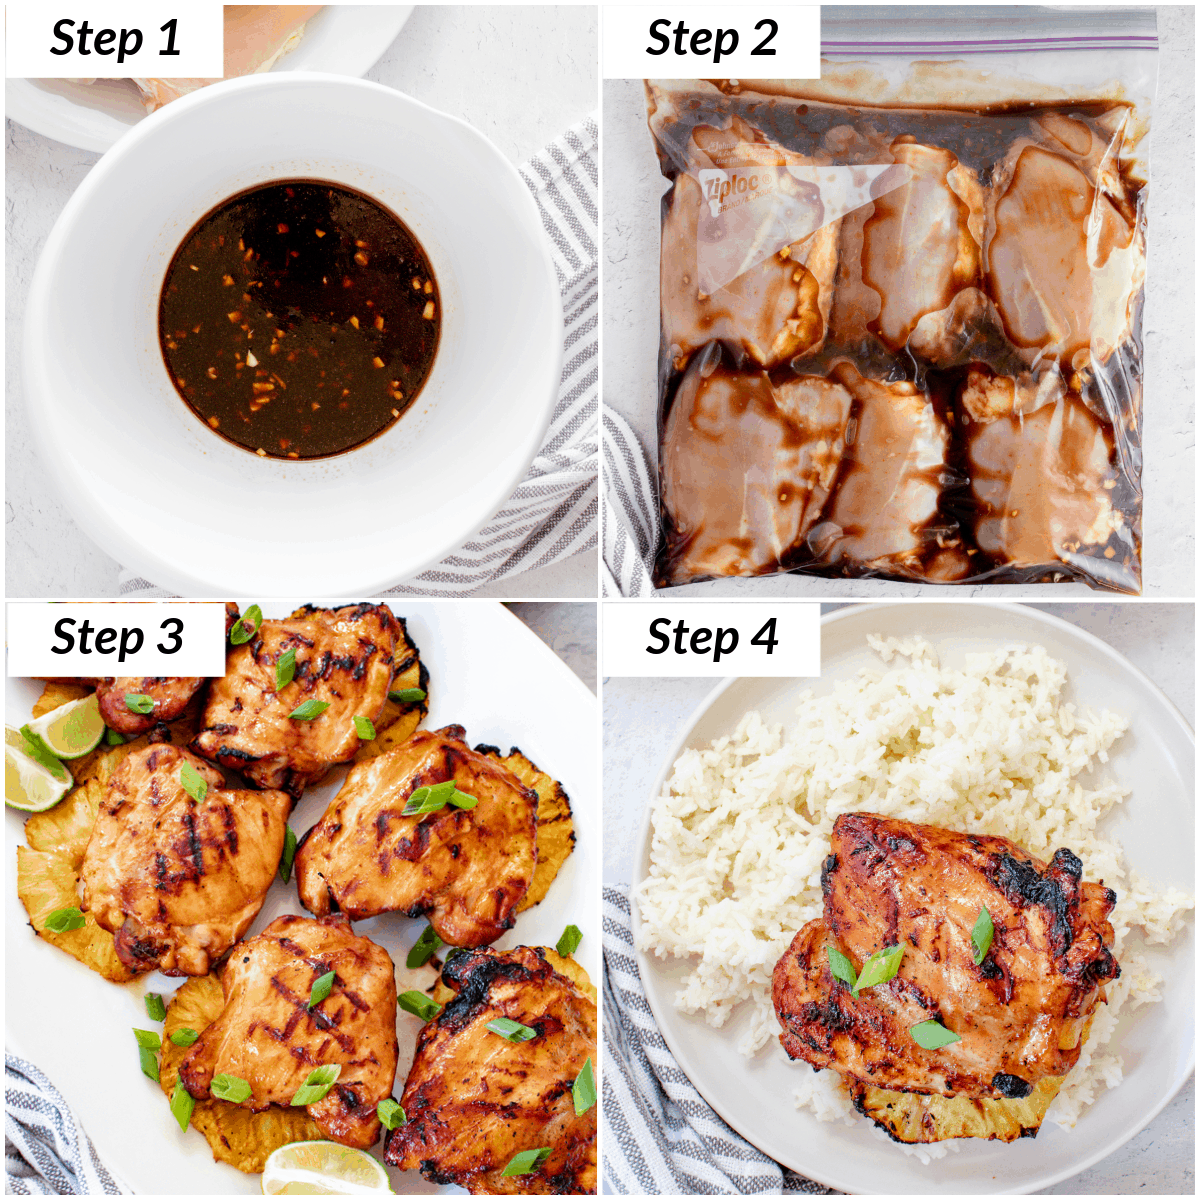 image collage showing the steps for making huli huli chicken